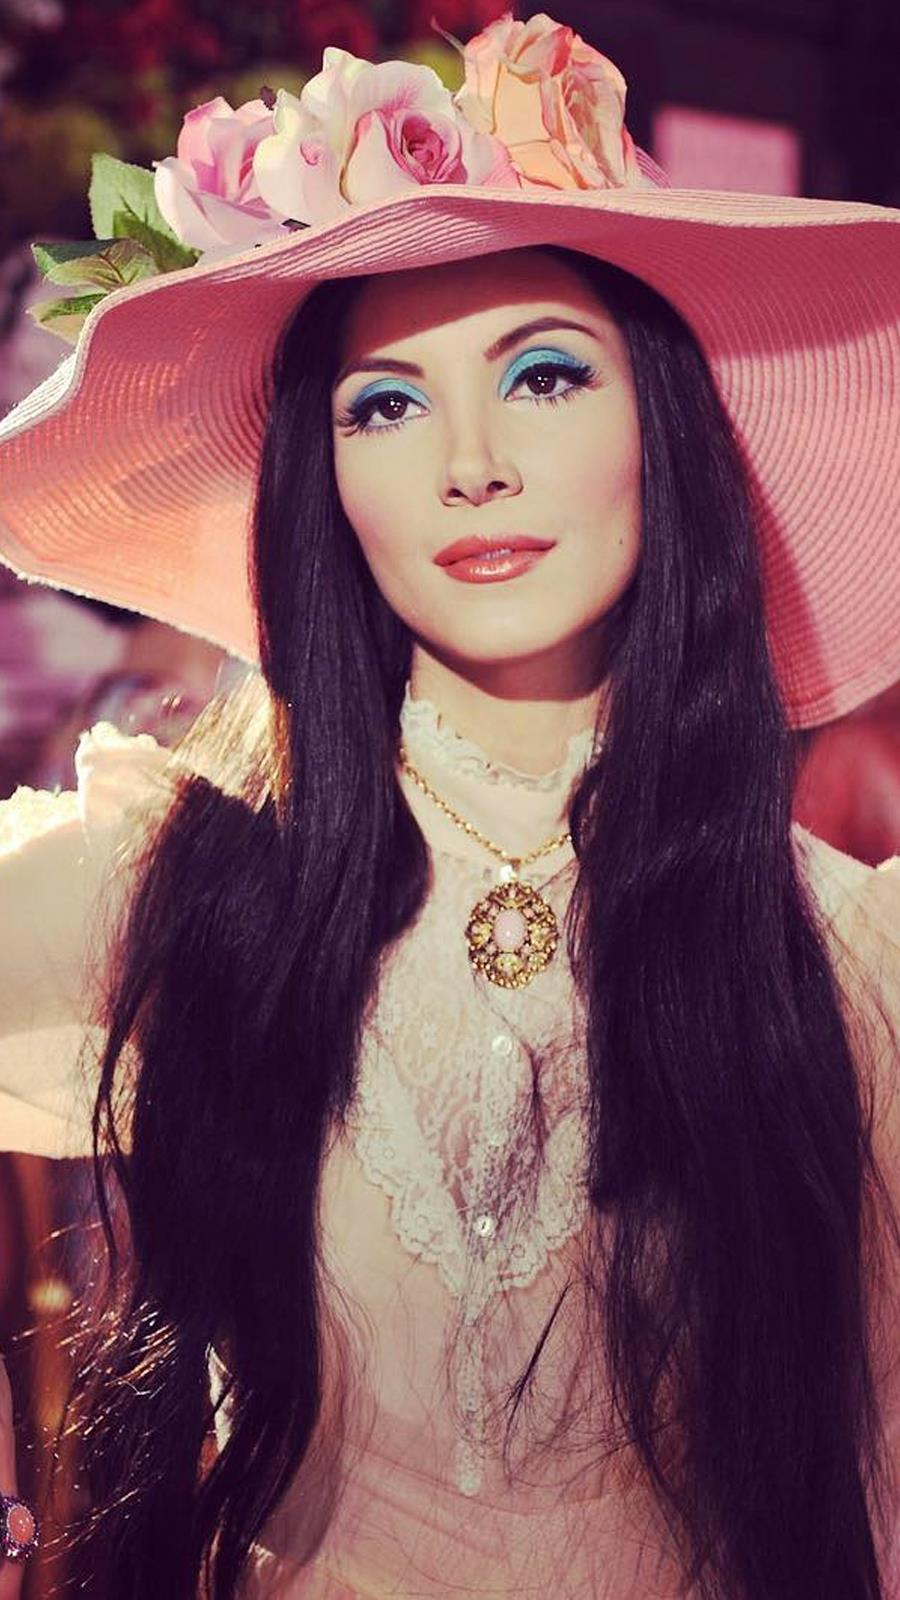 The Love Witch @cuttlas75. Libra: The Love Witch